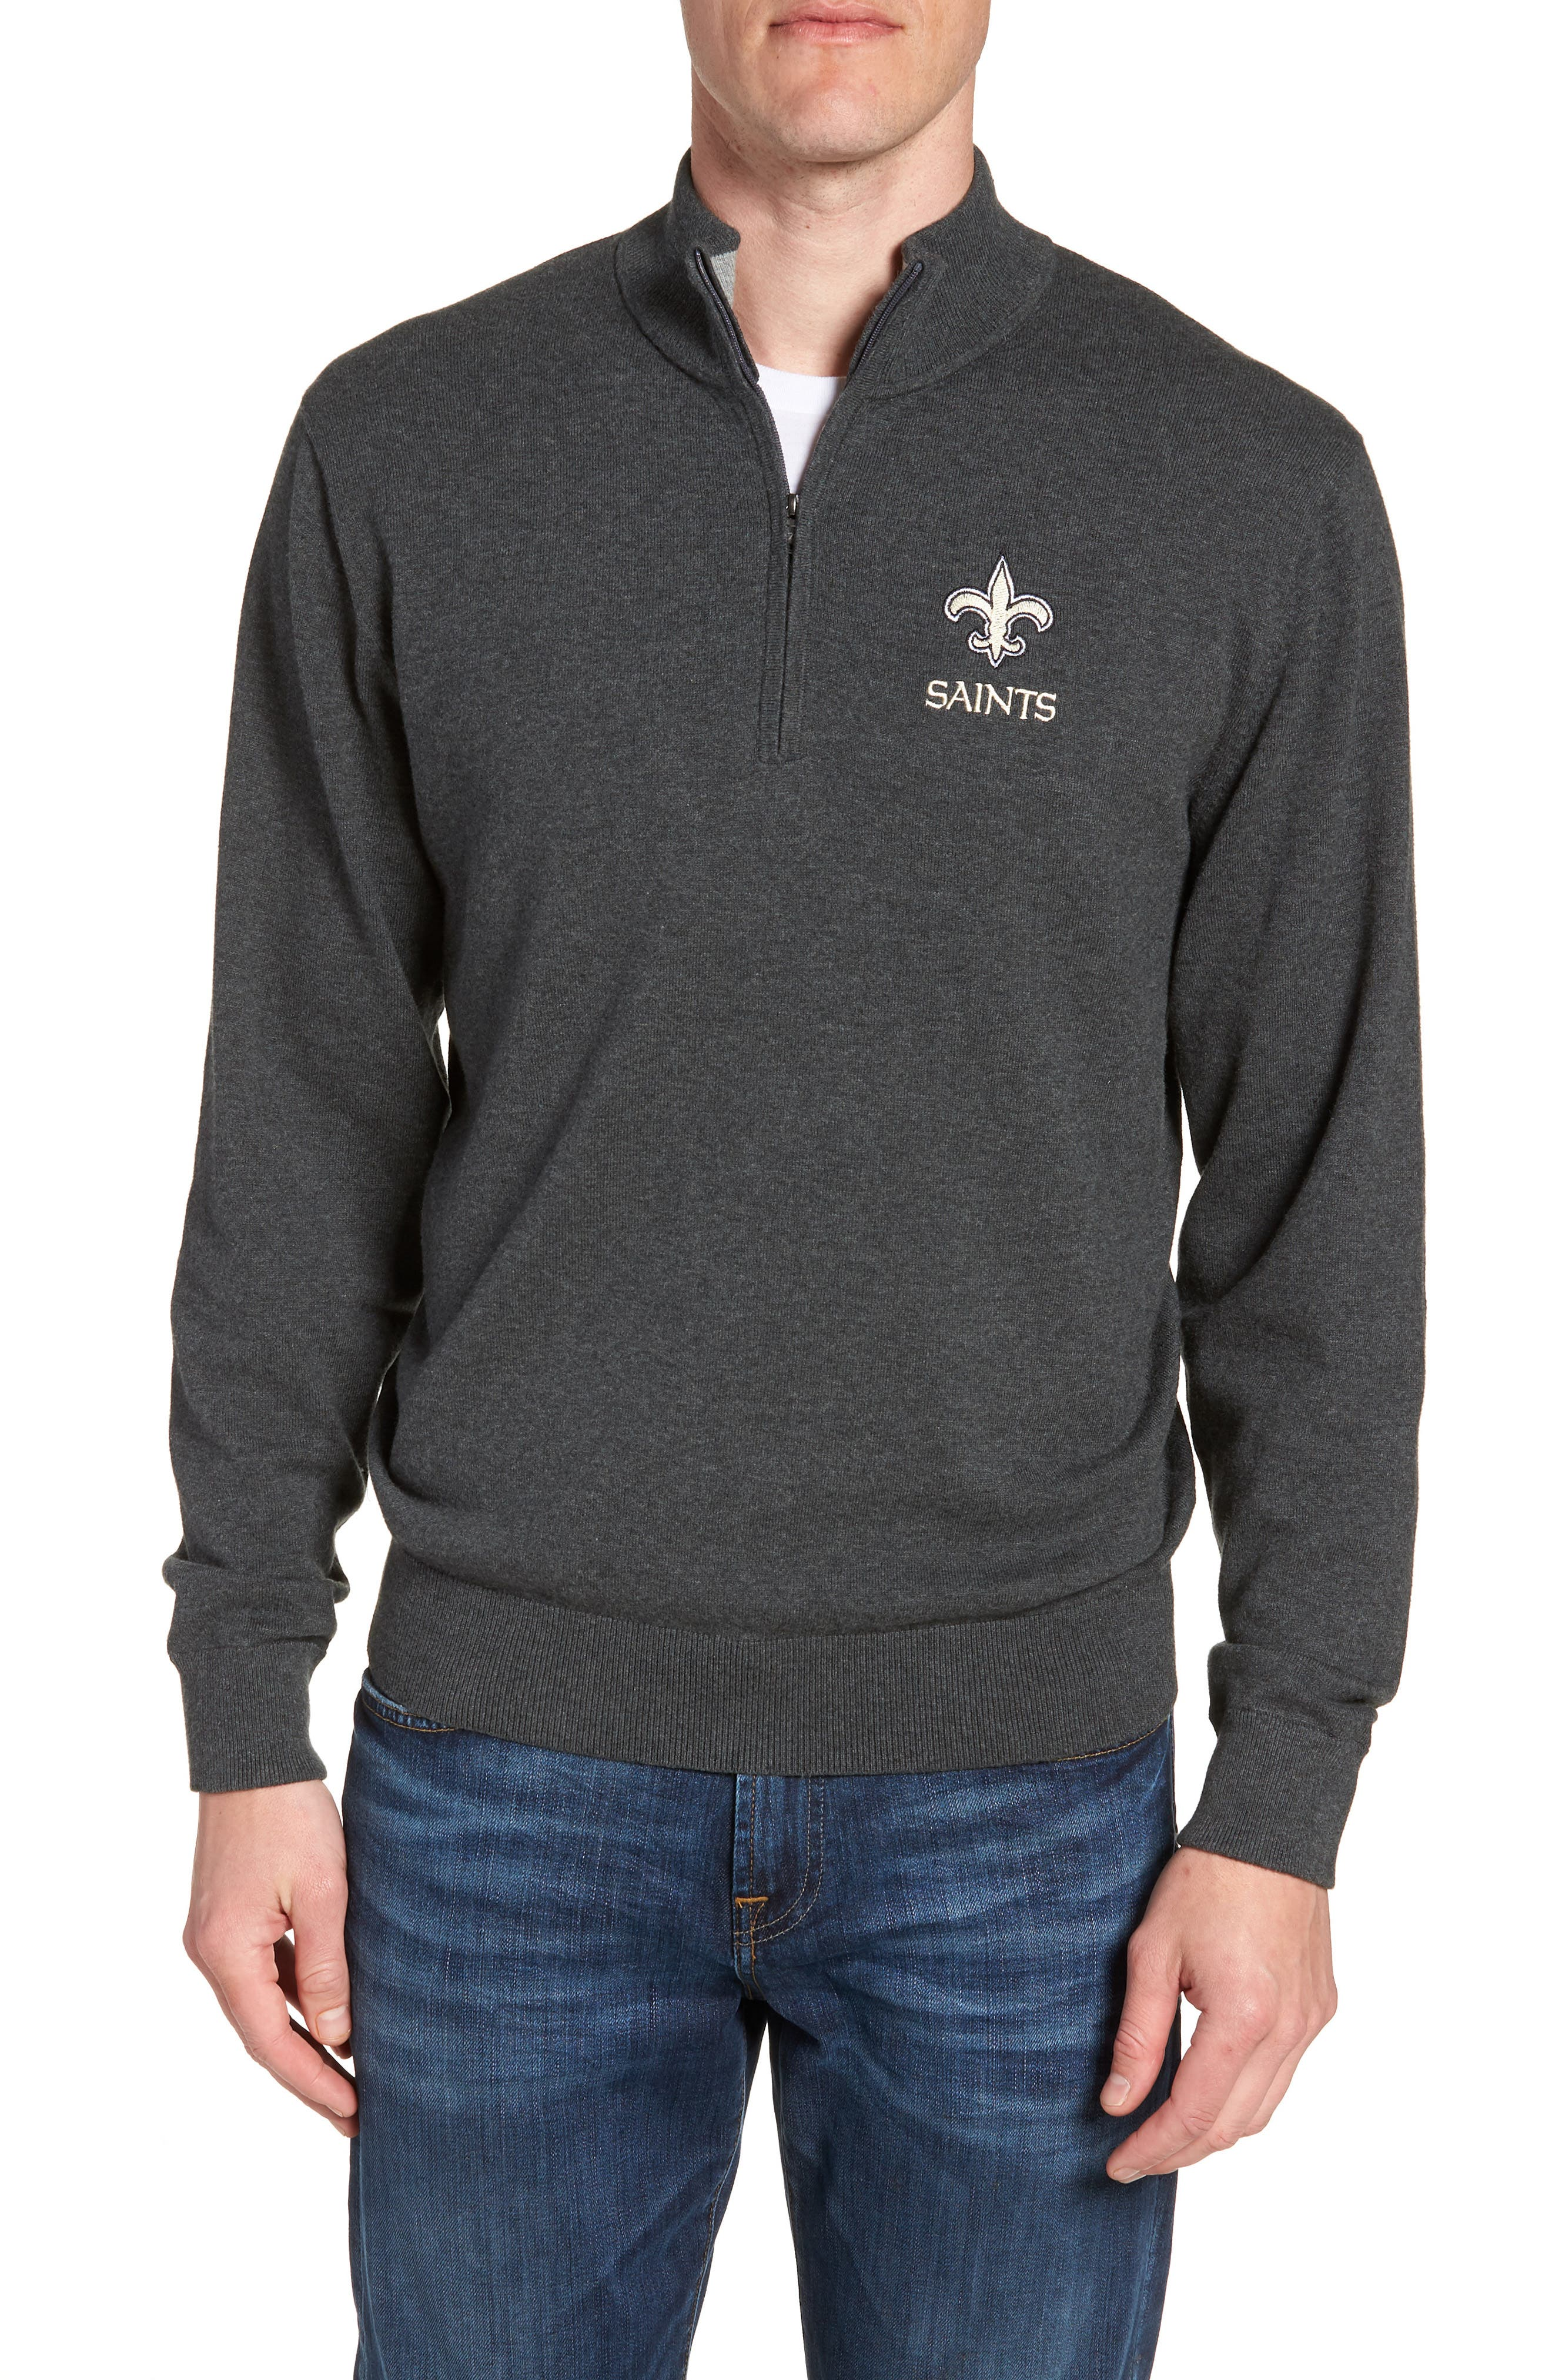 New Orleans Saints - Lakemont Regular Fit Quarter Zip Sweater,                             Main thumbnail 1, color,                             CHARCOAL HEATHER